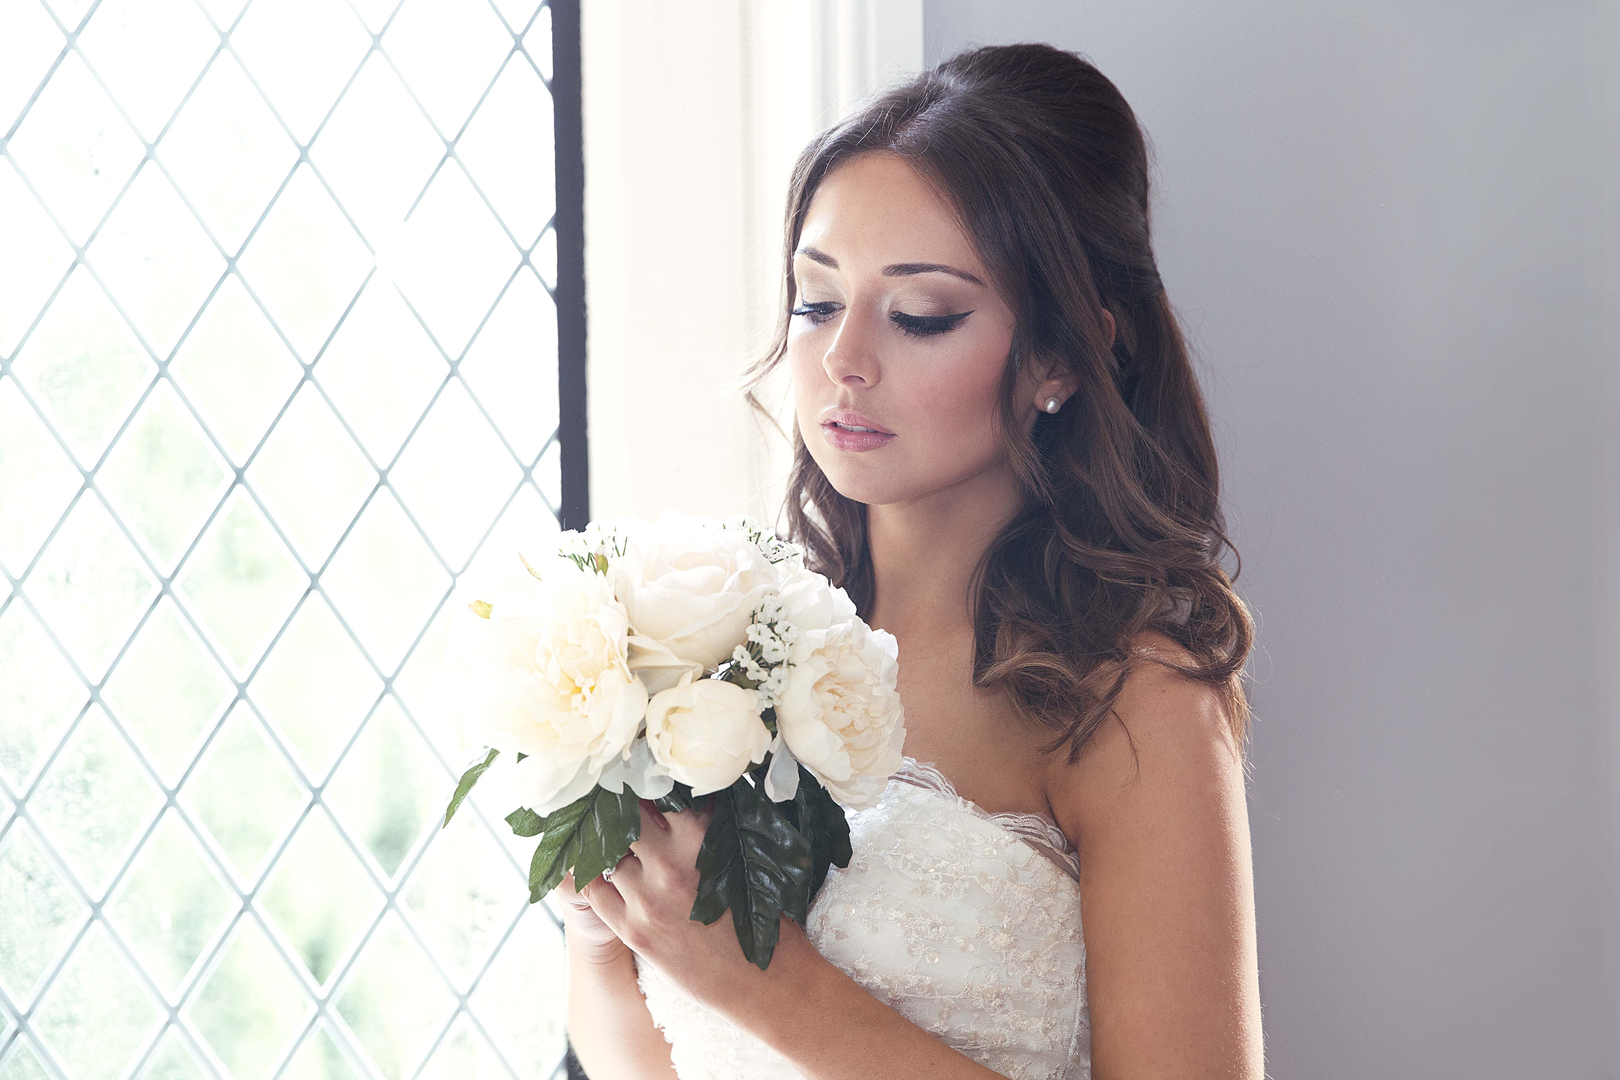 Beautystyle Mobile Hair And Make Up Wedding Hair And Make Up